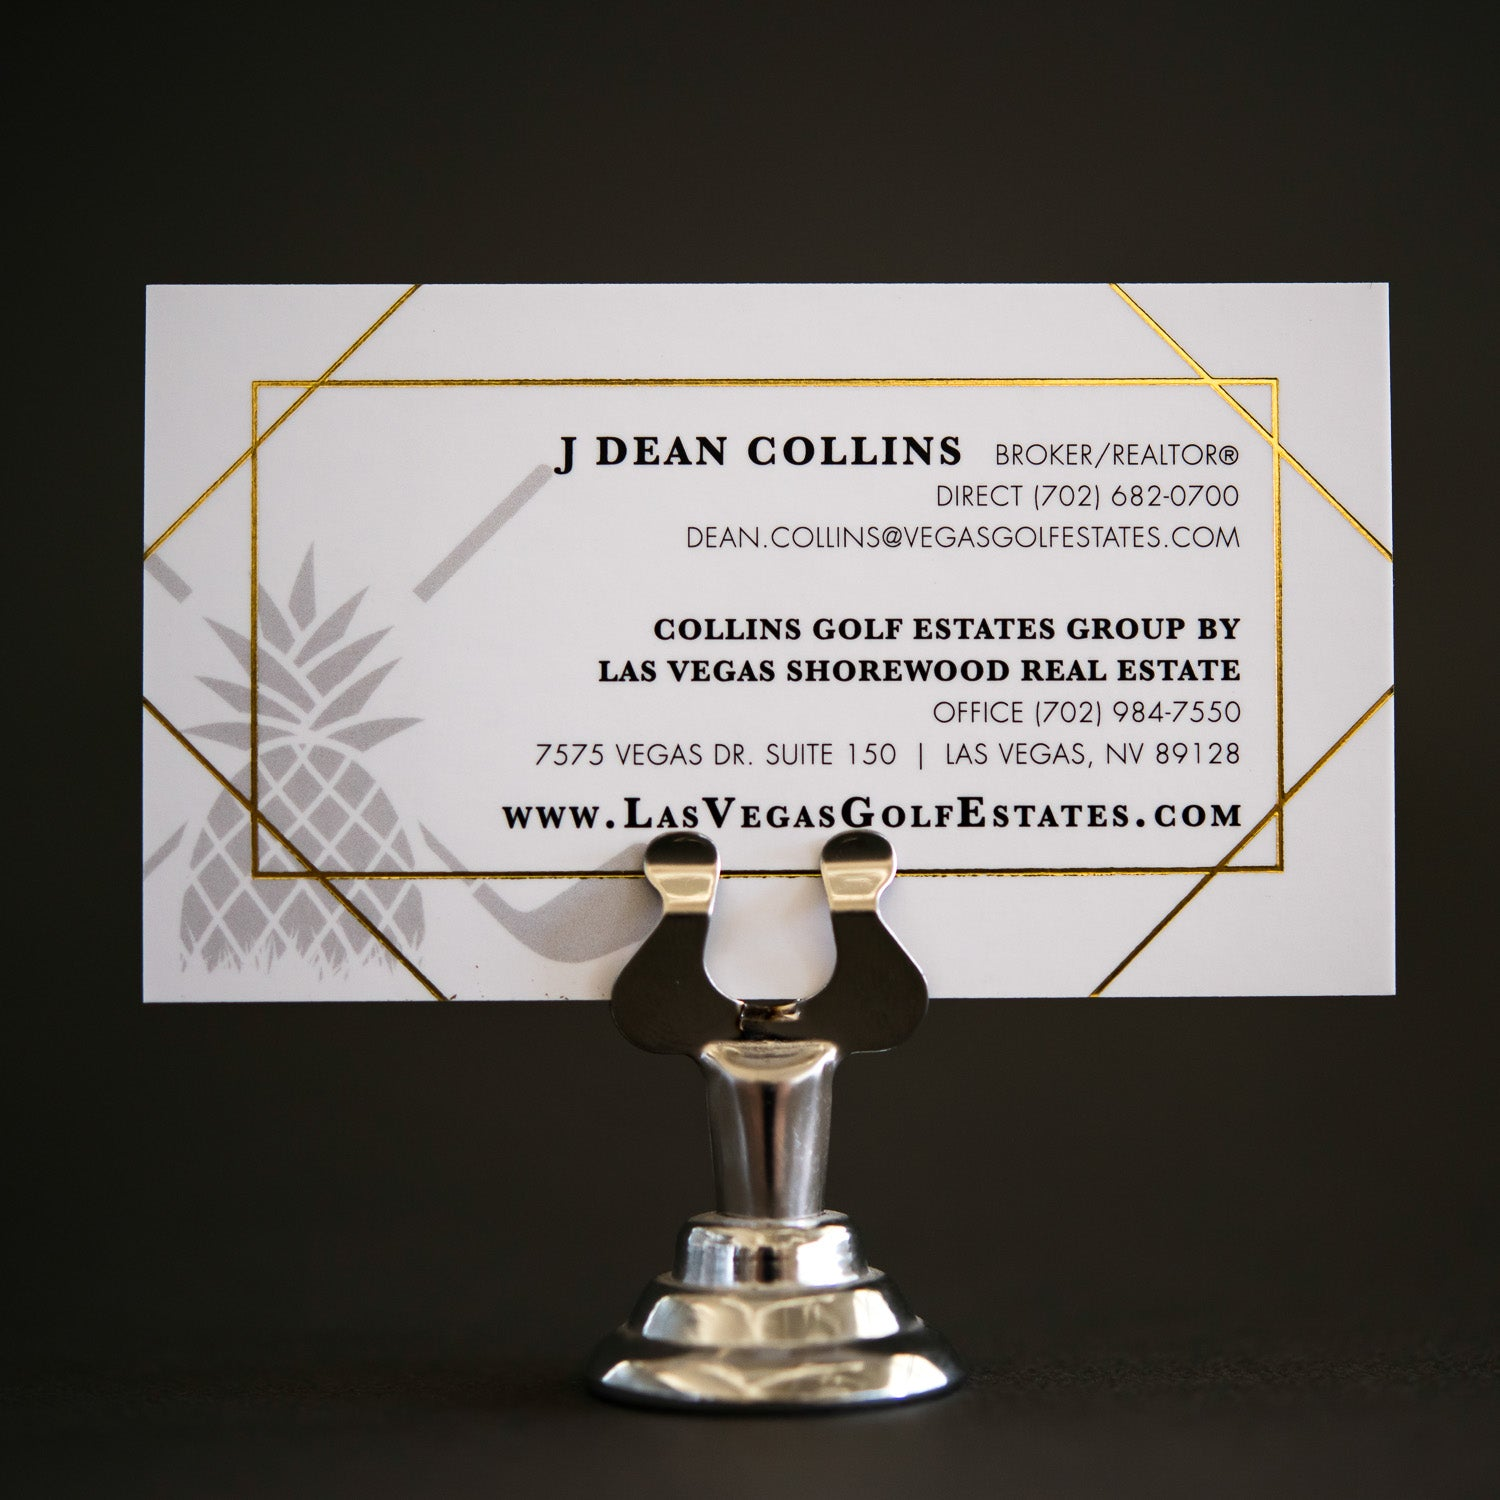 DIGITAL FOIL BUSINESS CARDS